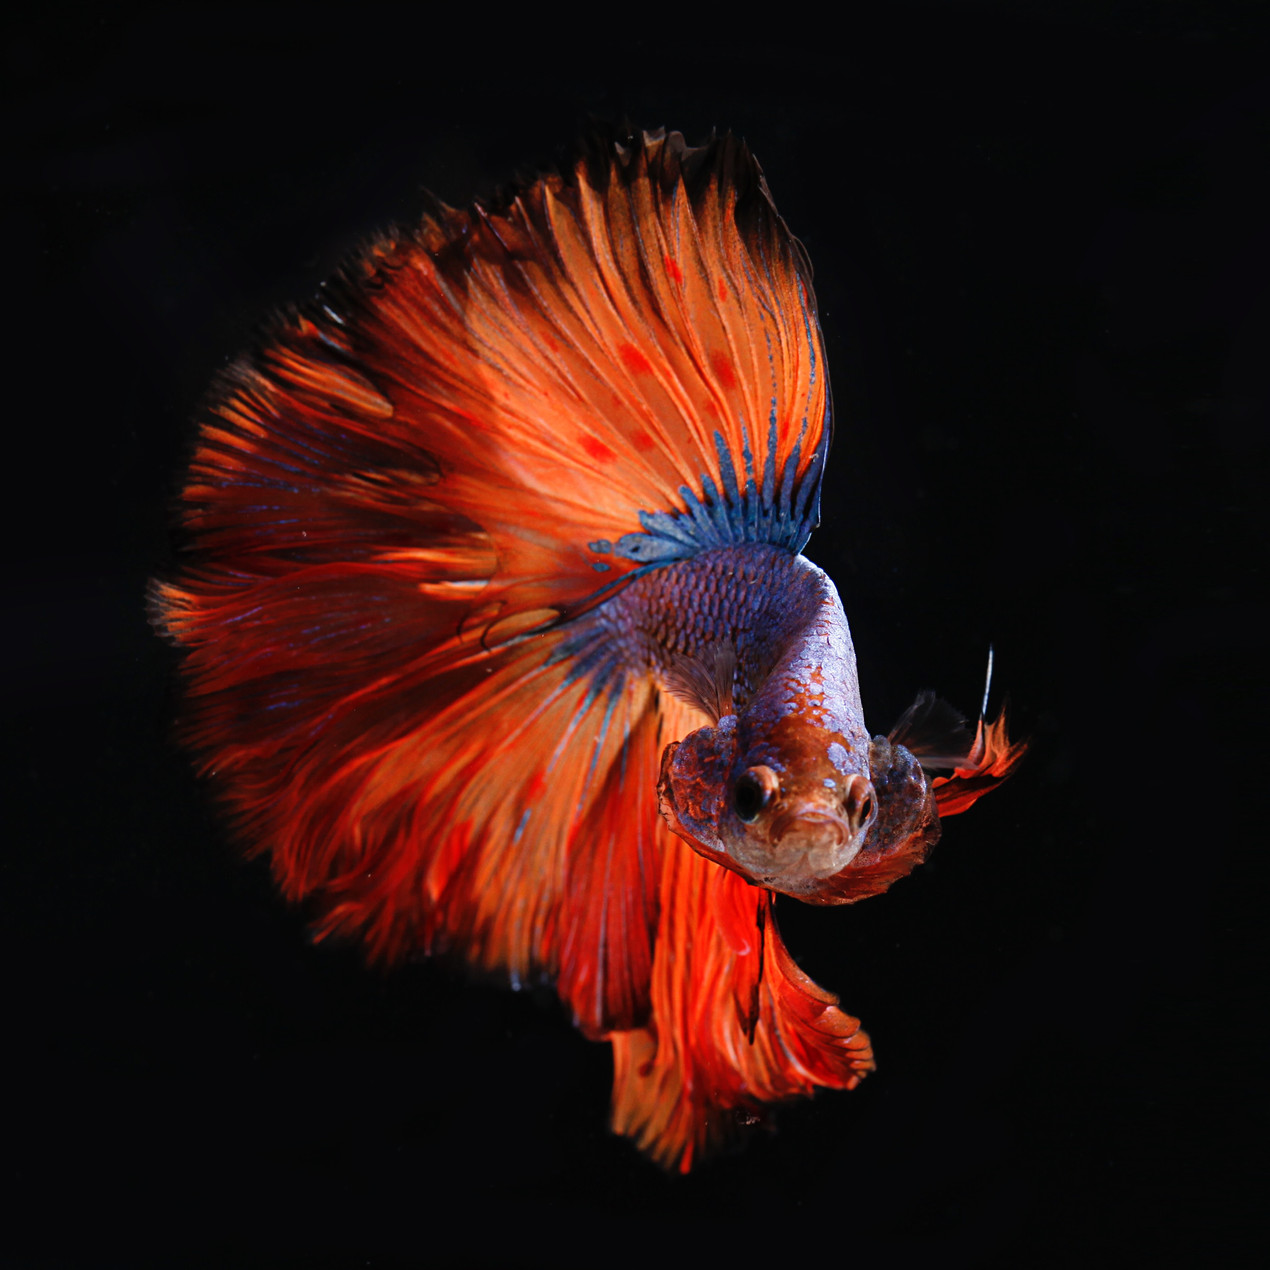 Betta fish with expanded tail